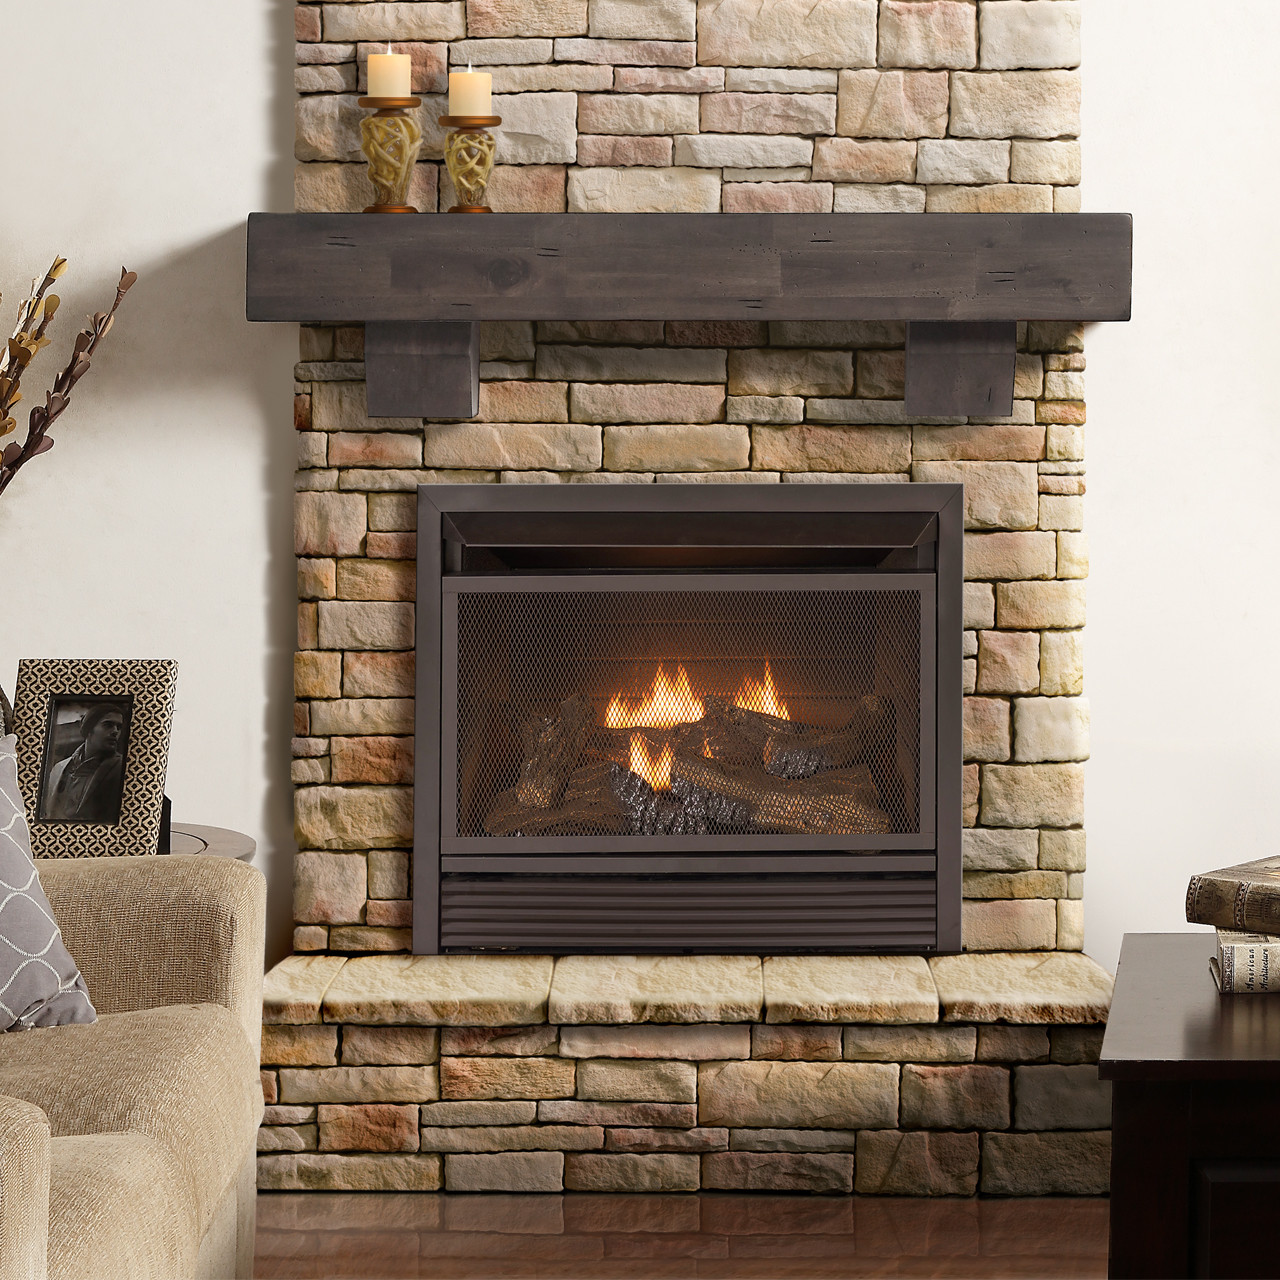 How Much Do Gas Fireplace Logs Cost Duluth Forge Fireplace Gas Log Sets Grills Factory Buys Direct